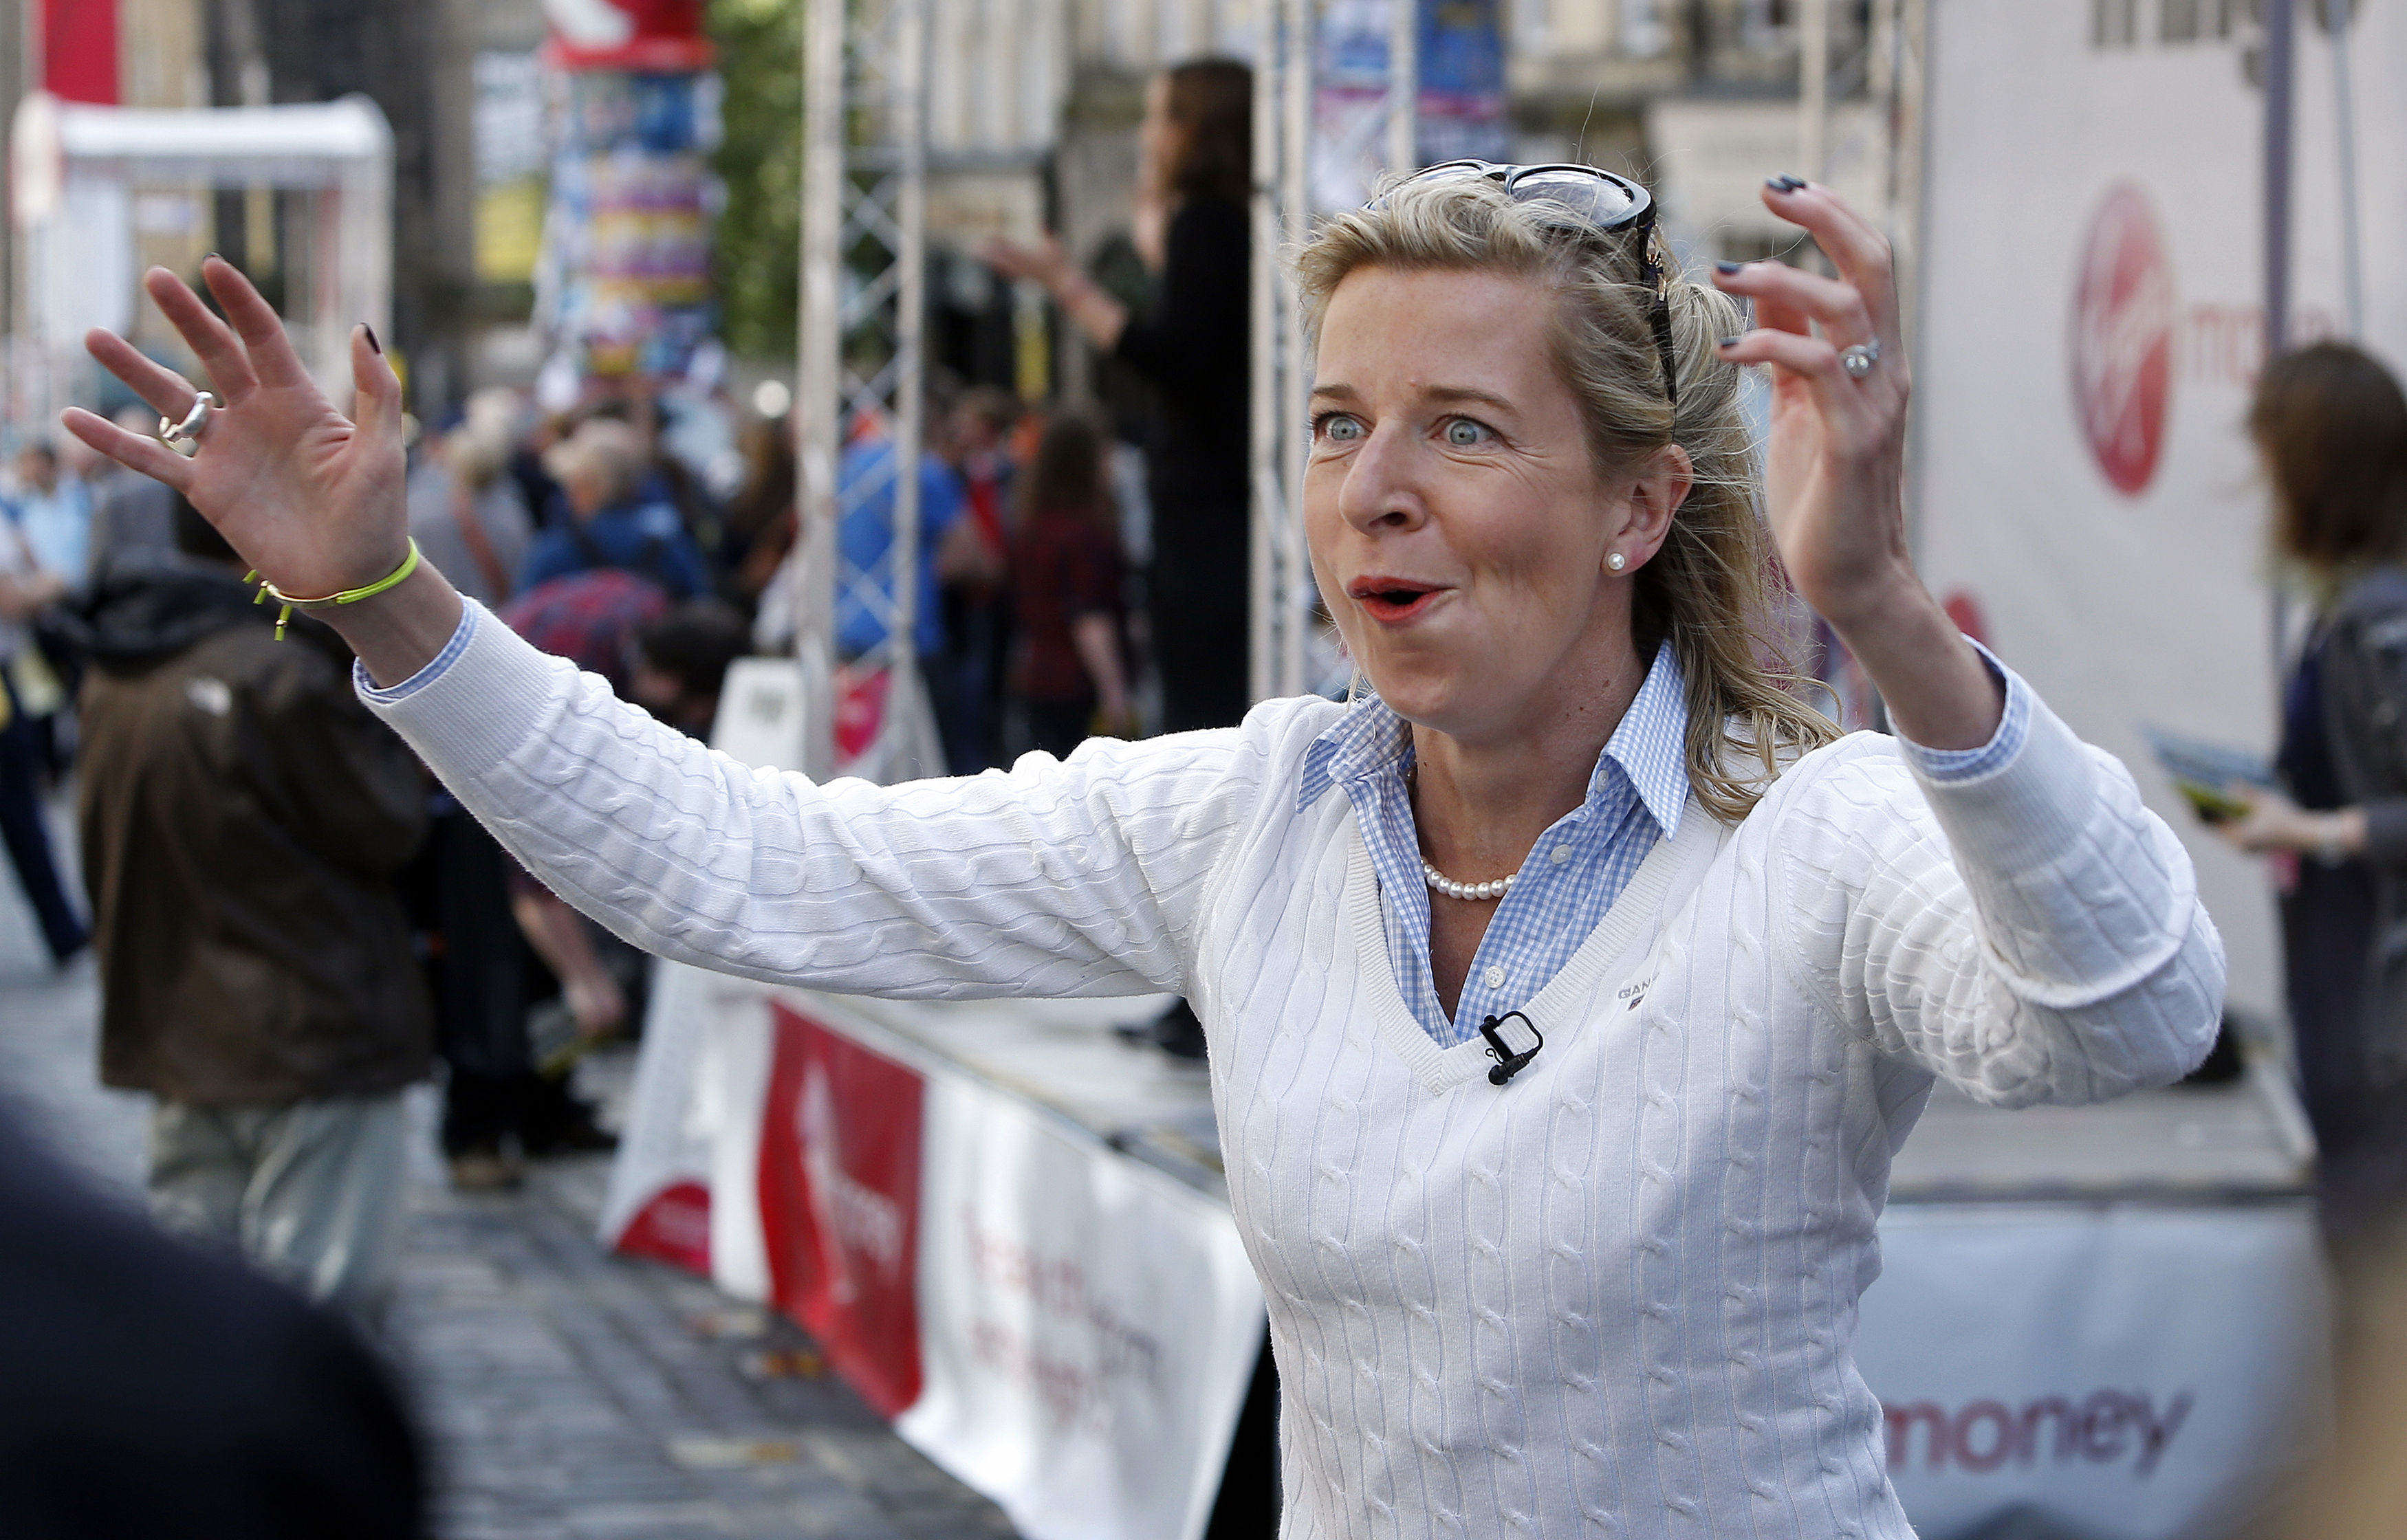 PA 23910461 1 Katie Hopkins Just Massively Embarrassed Herself Live On Air